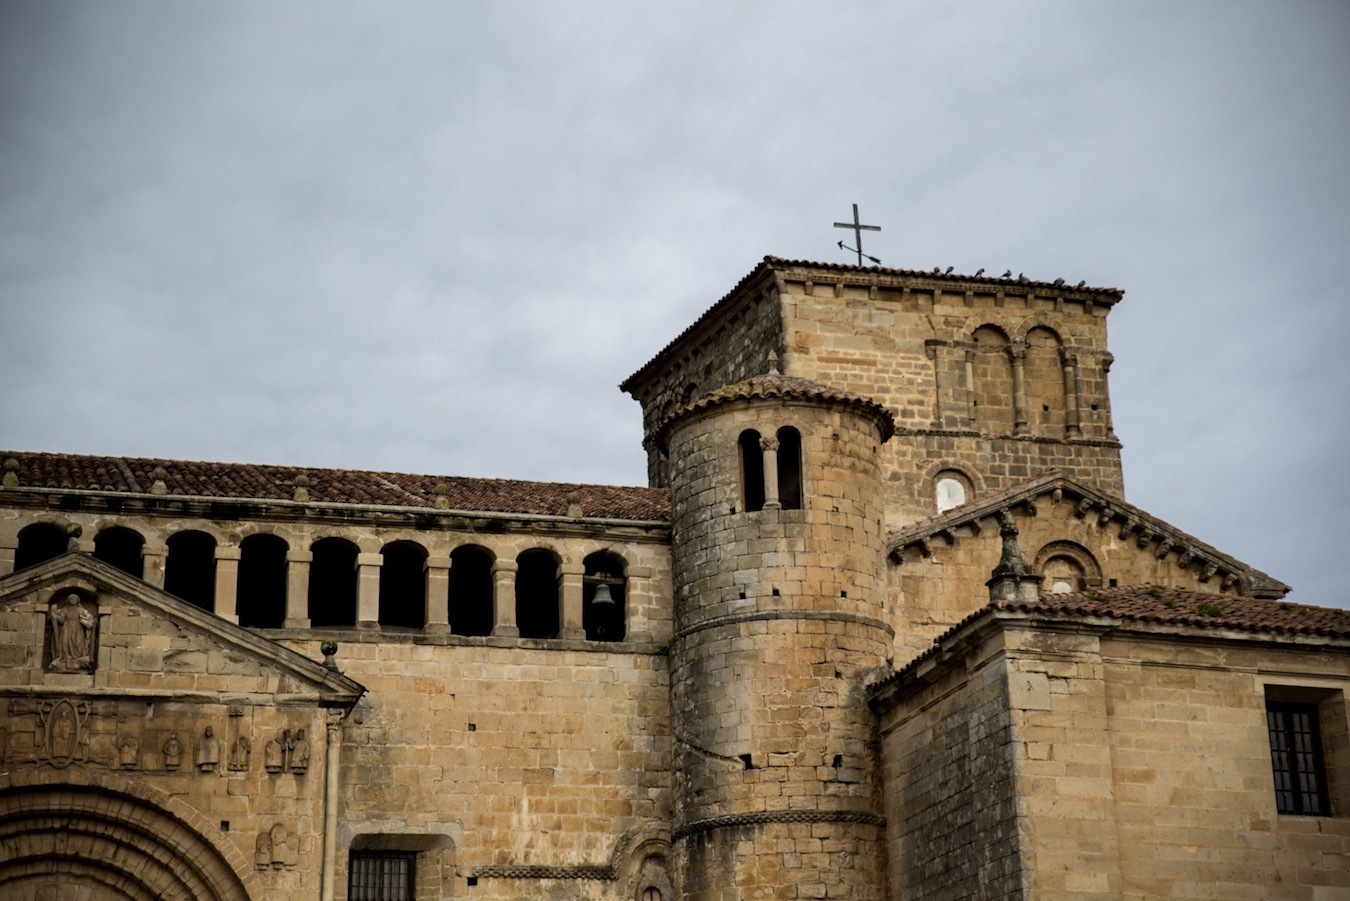 Santillana del Mar, Cantabria, northern Spain